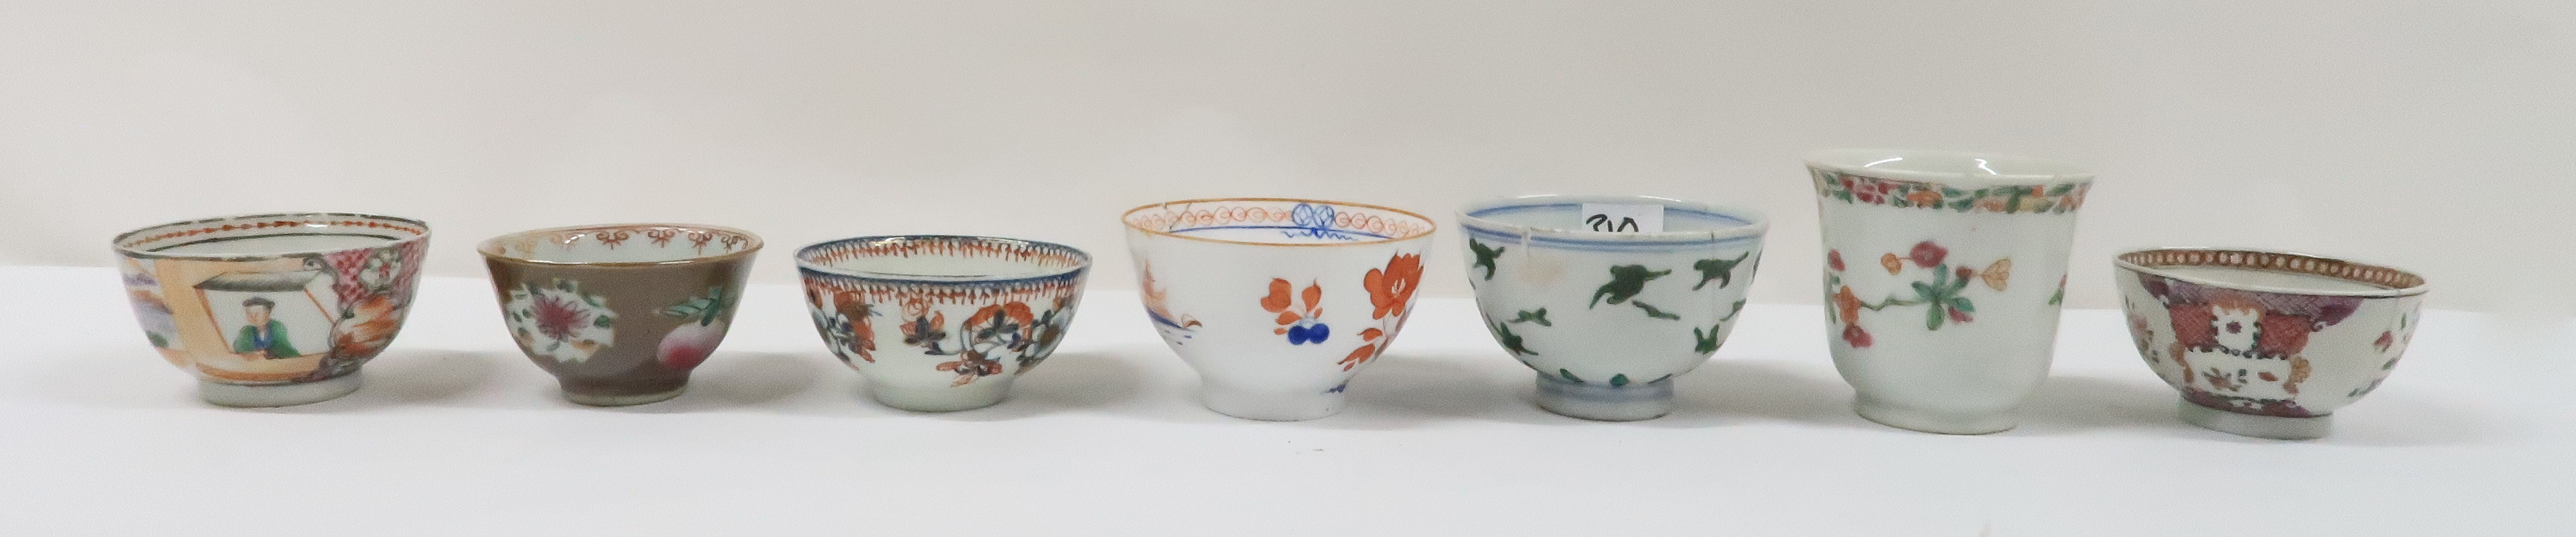 A COLLECTION OF CHINESE EXPORT TEAWARES and others including famille rose, Chien Lung, blue and - Image 5 of 22